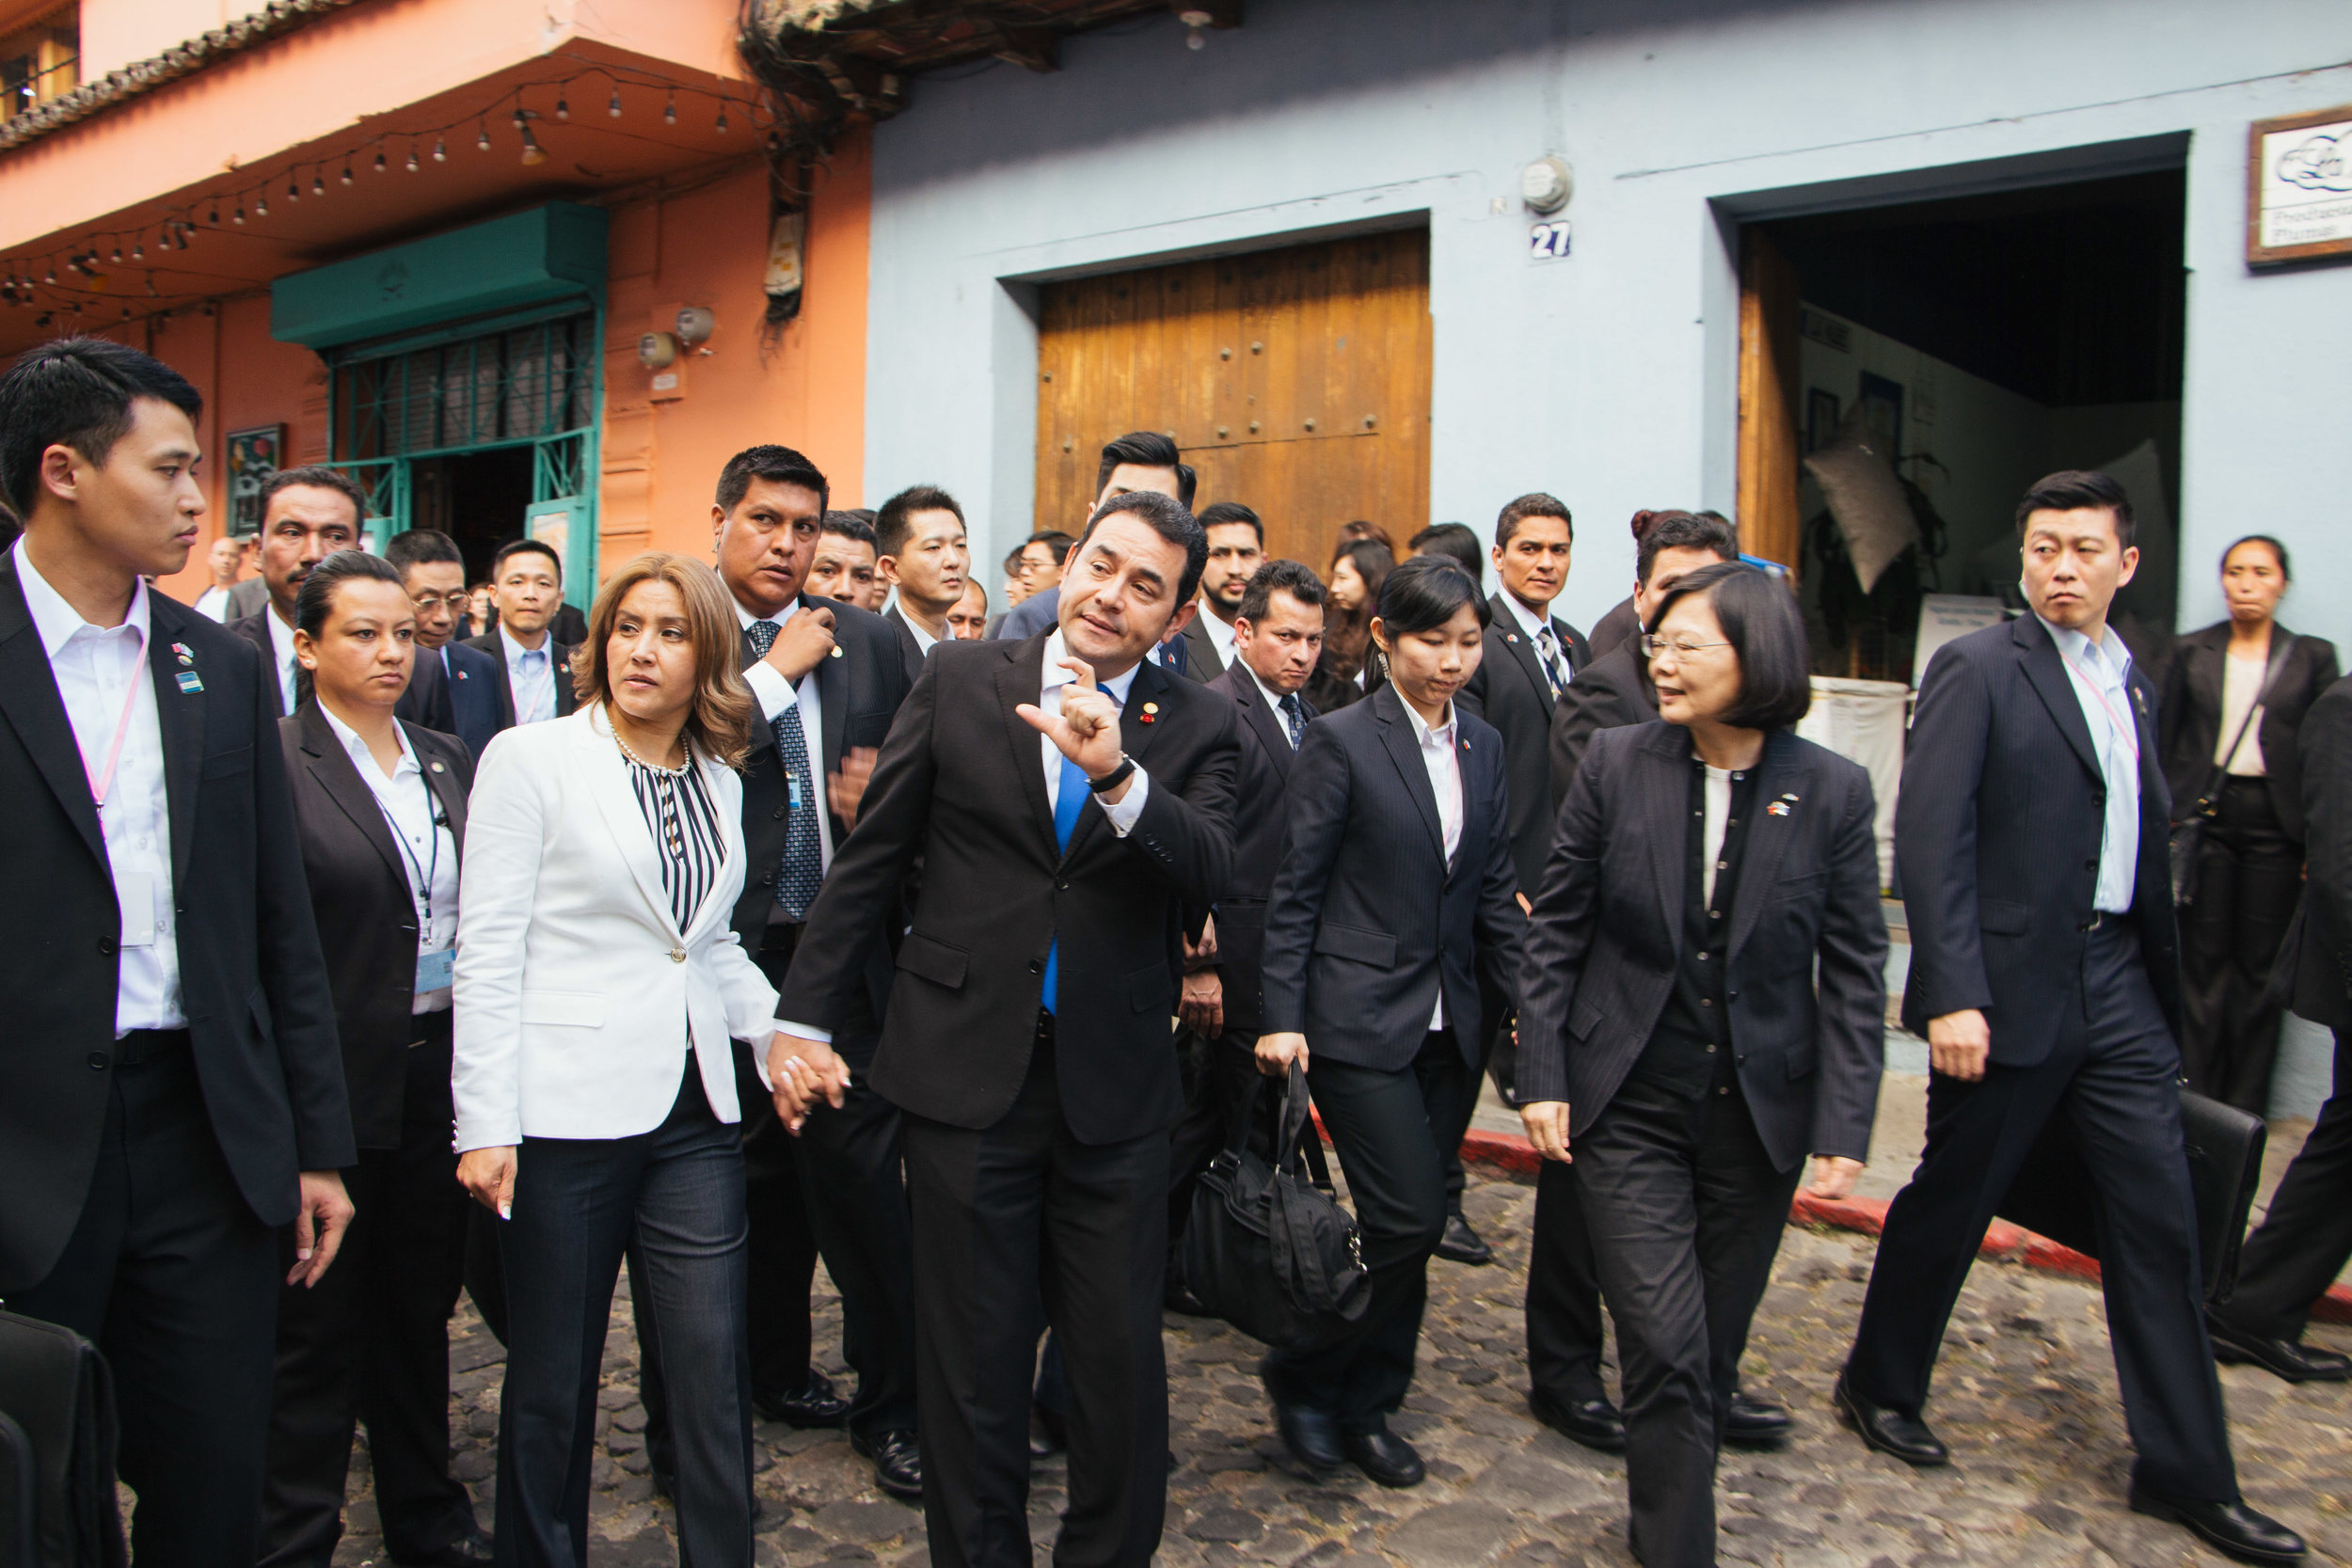 GUATEMALAN PRESIDENT JIMMY MORALES AND TAIWANESE PRESIDENT TSAI INGWEN STROLL THROUGH THE STREETS OF ANTIGUA, GUATEMALA. ANTIGUA MAYOR SUSANA ASENSIO IS THE FIRST FEMALE MAYOR OF THE TOWN.